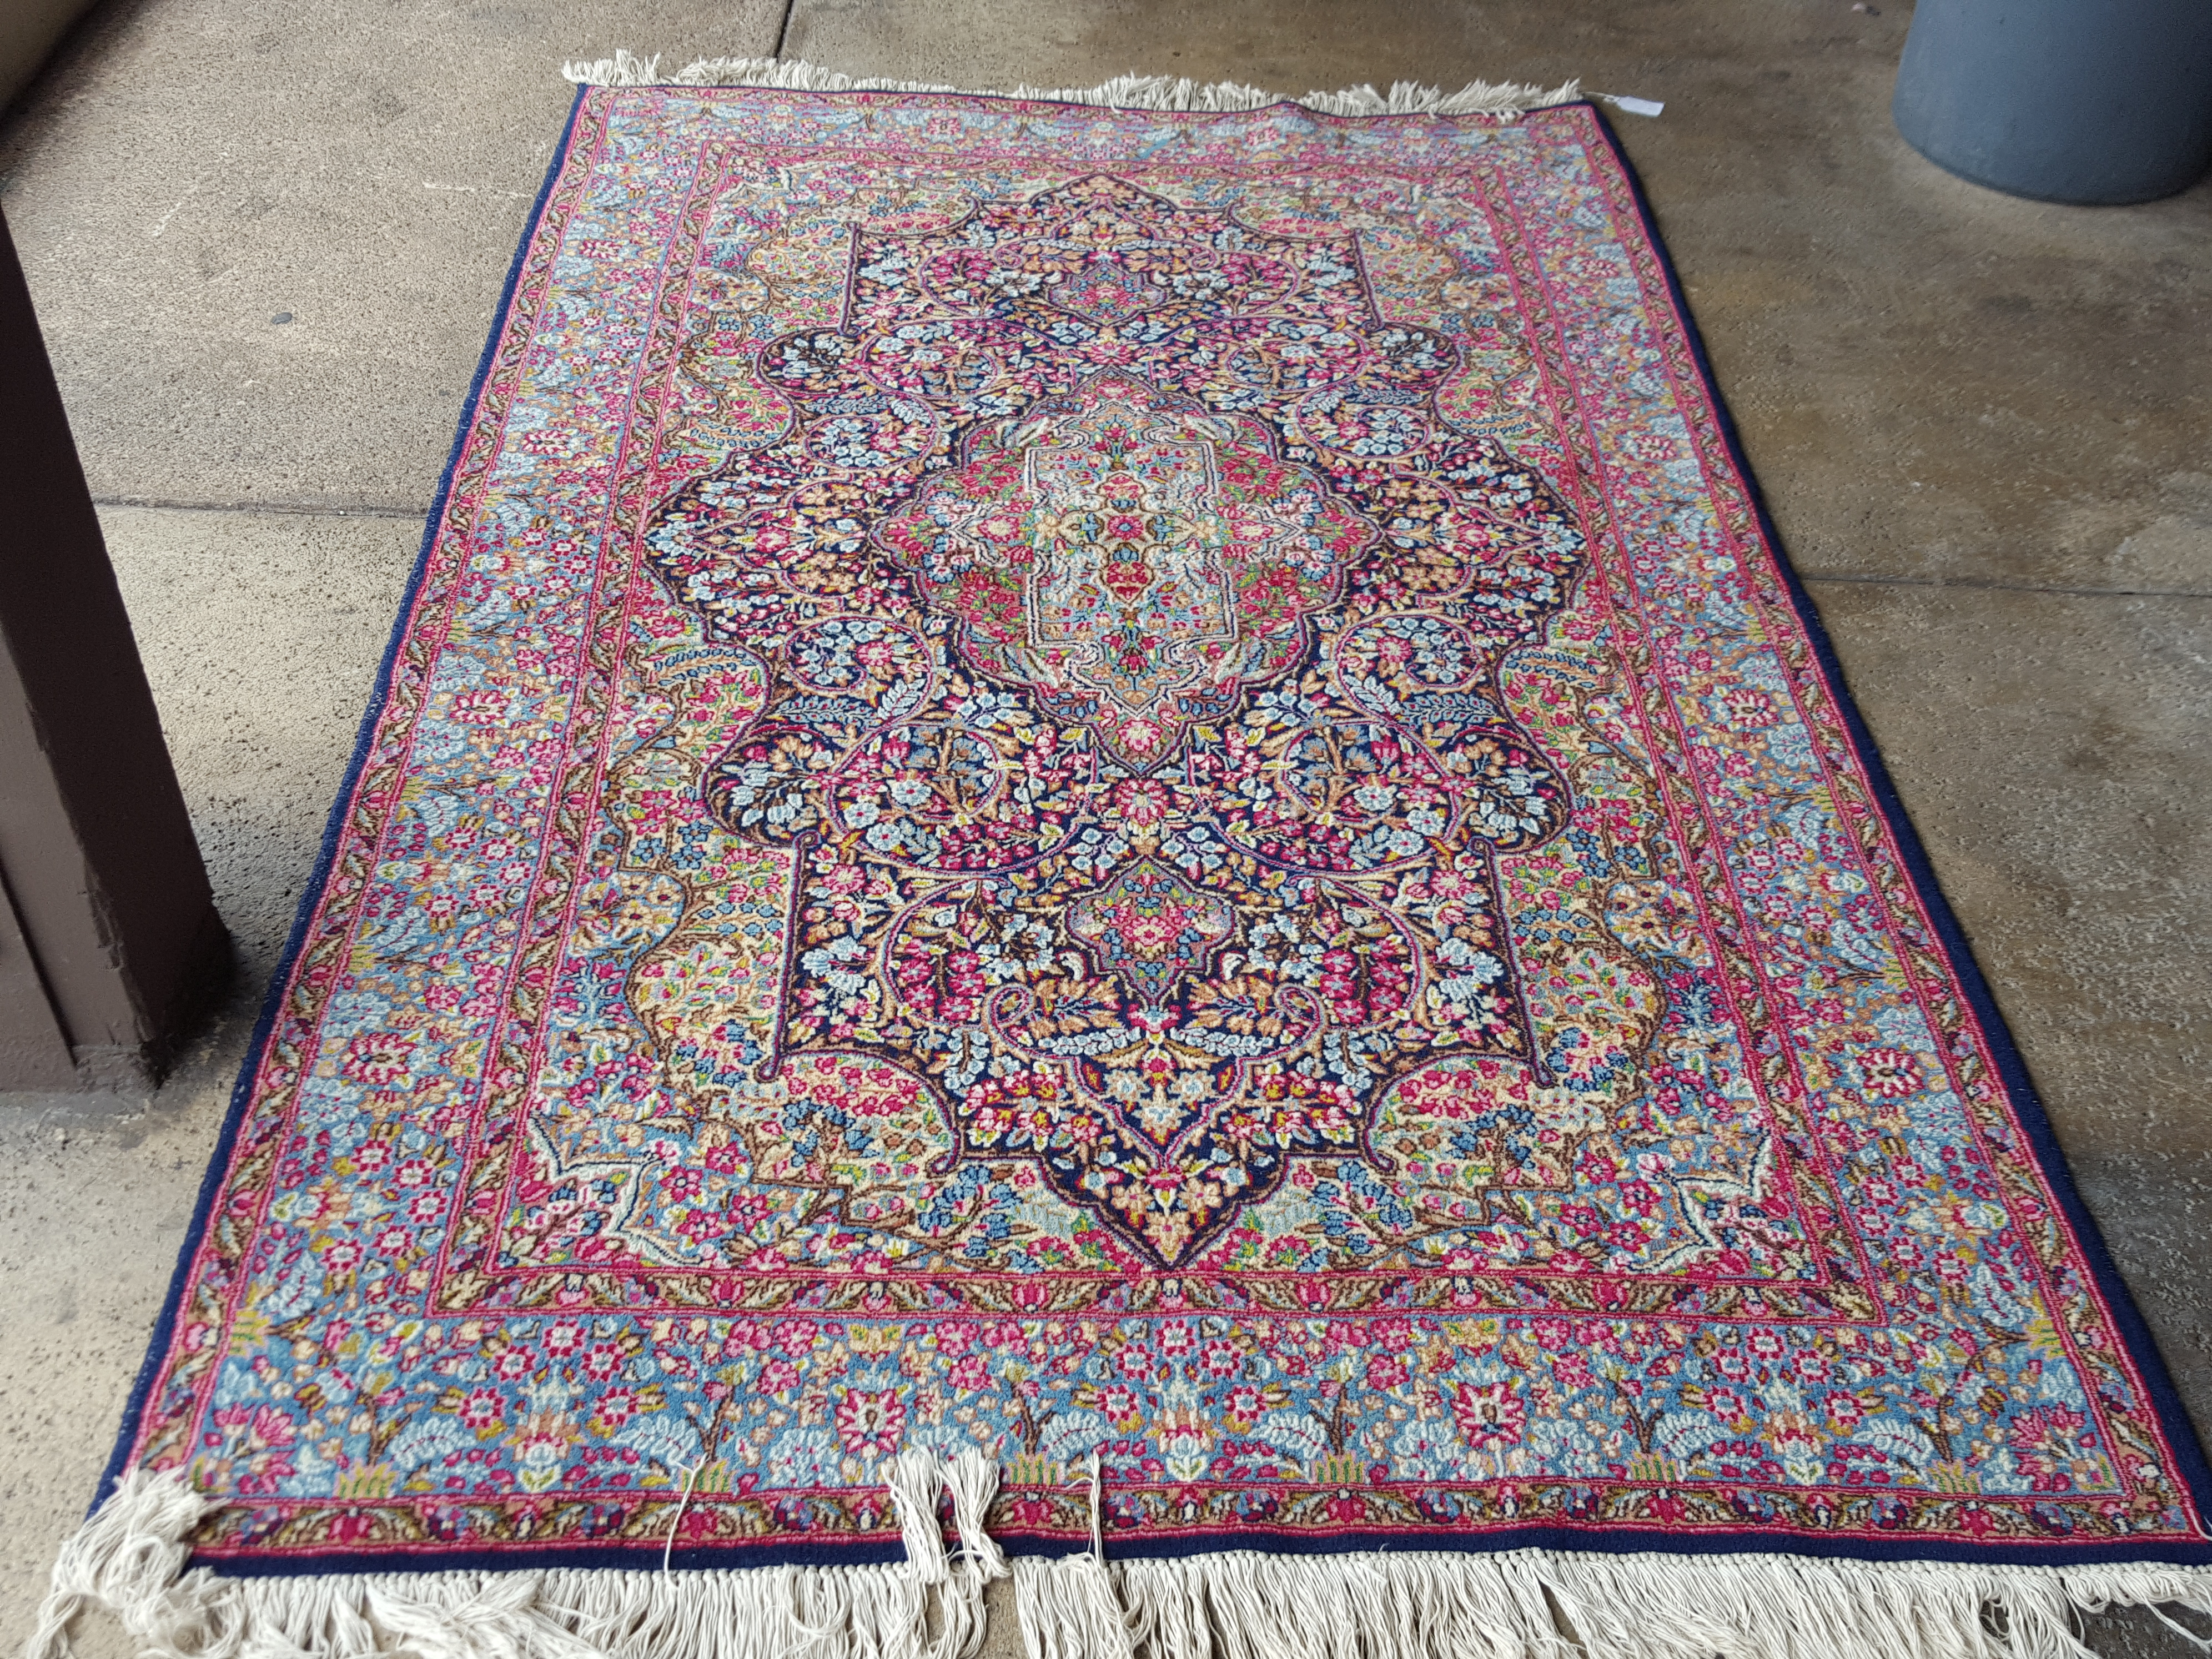 Approximately 6x9 stunning Persian Rugs Price: $2900.00